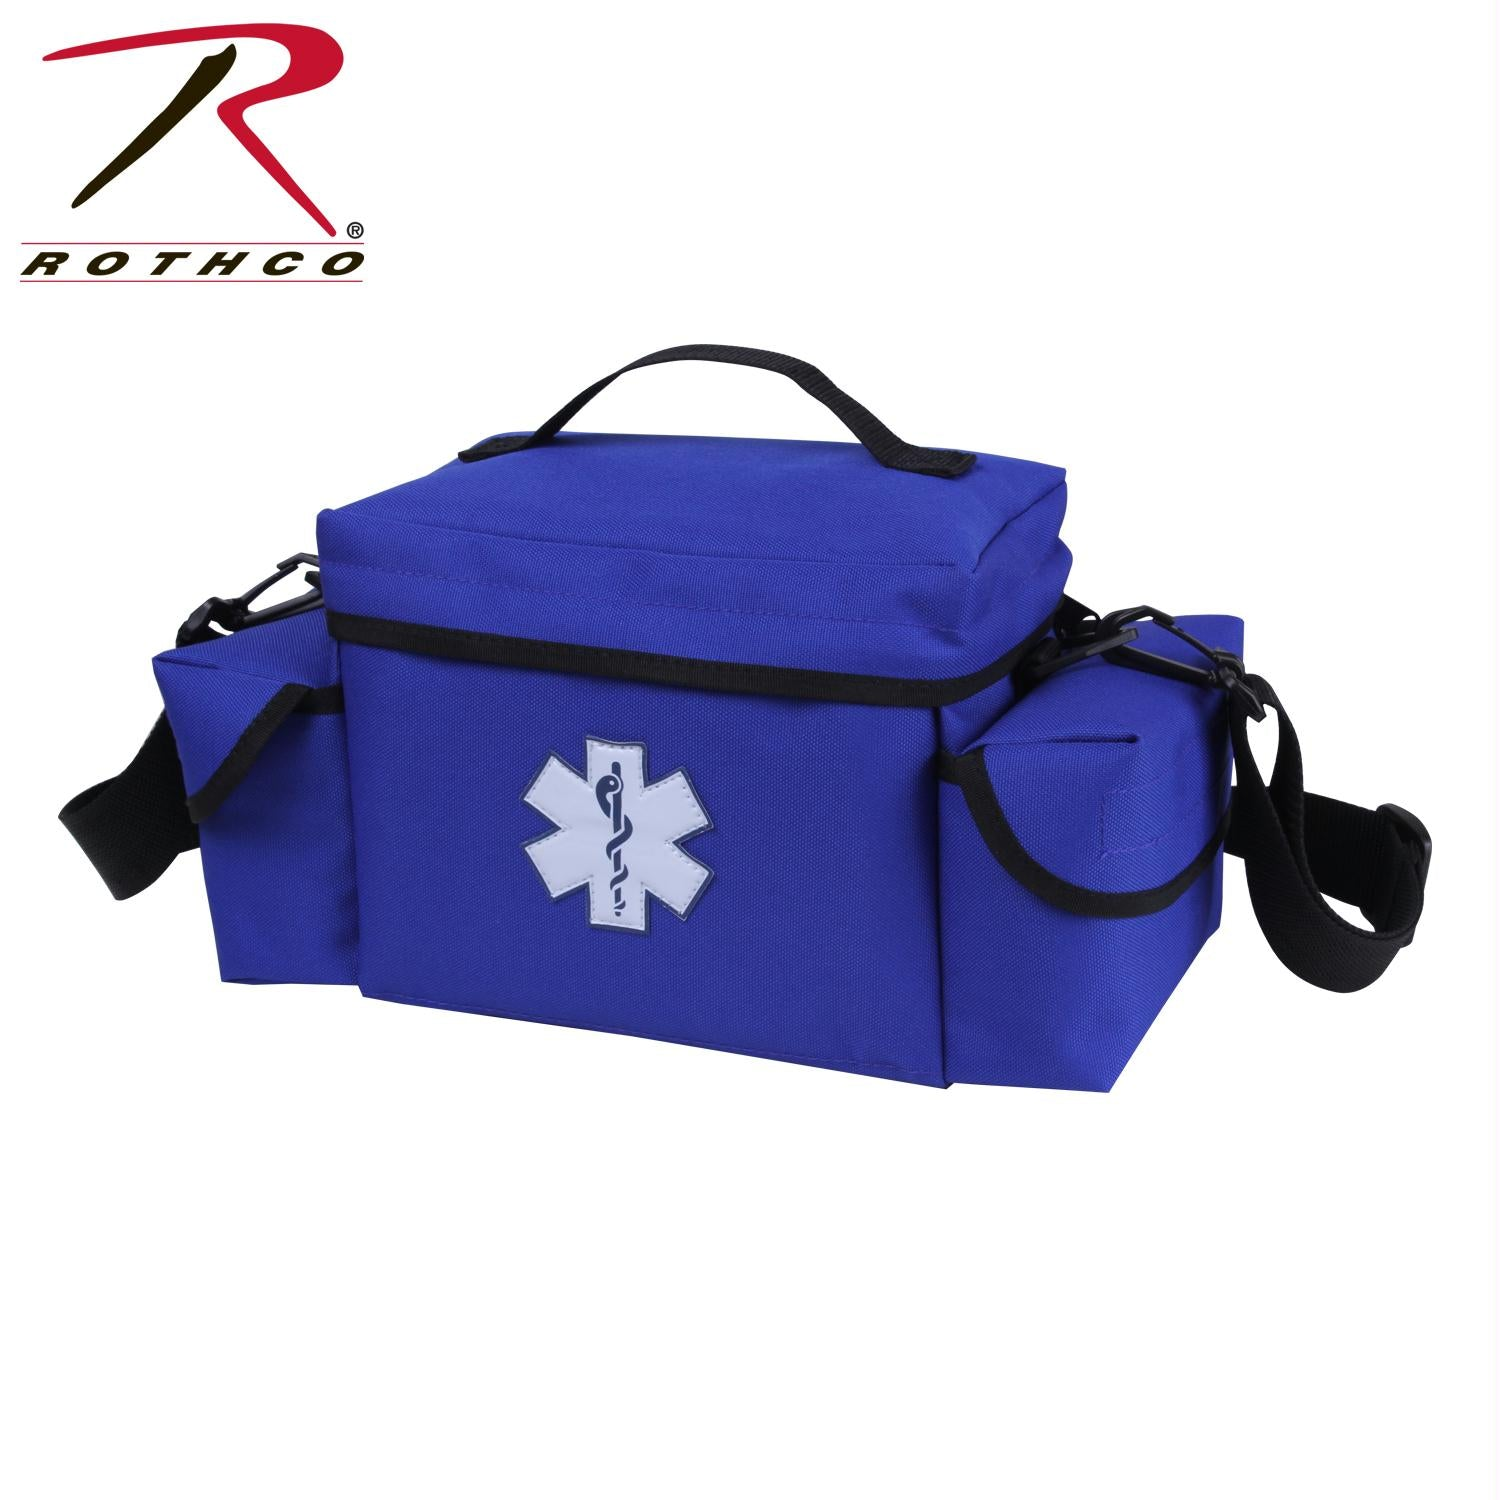 Rothco EMS Rescue Bag - Blue